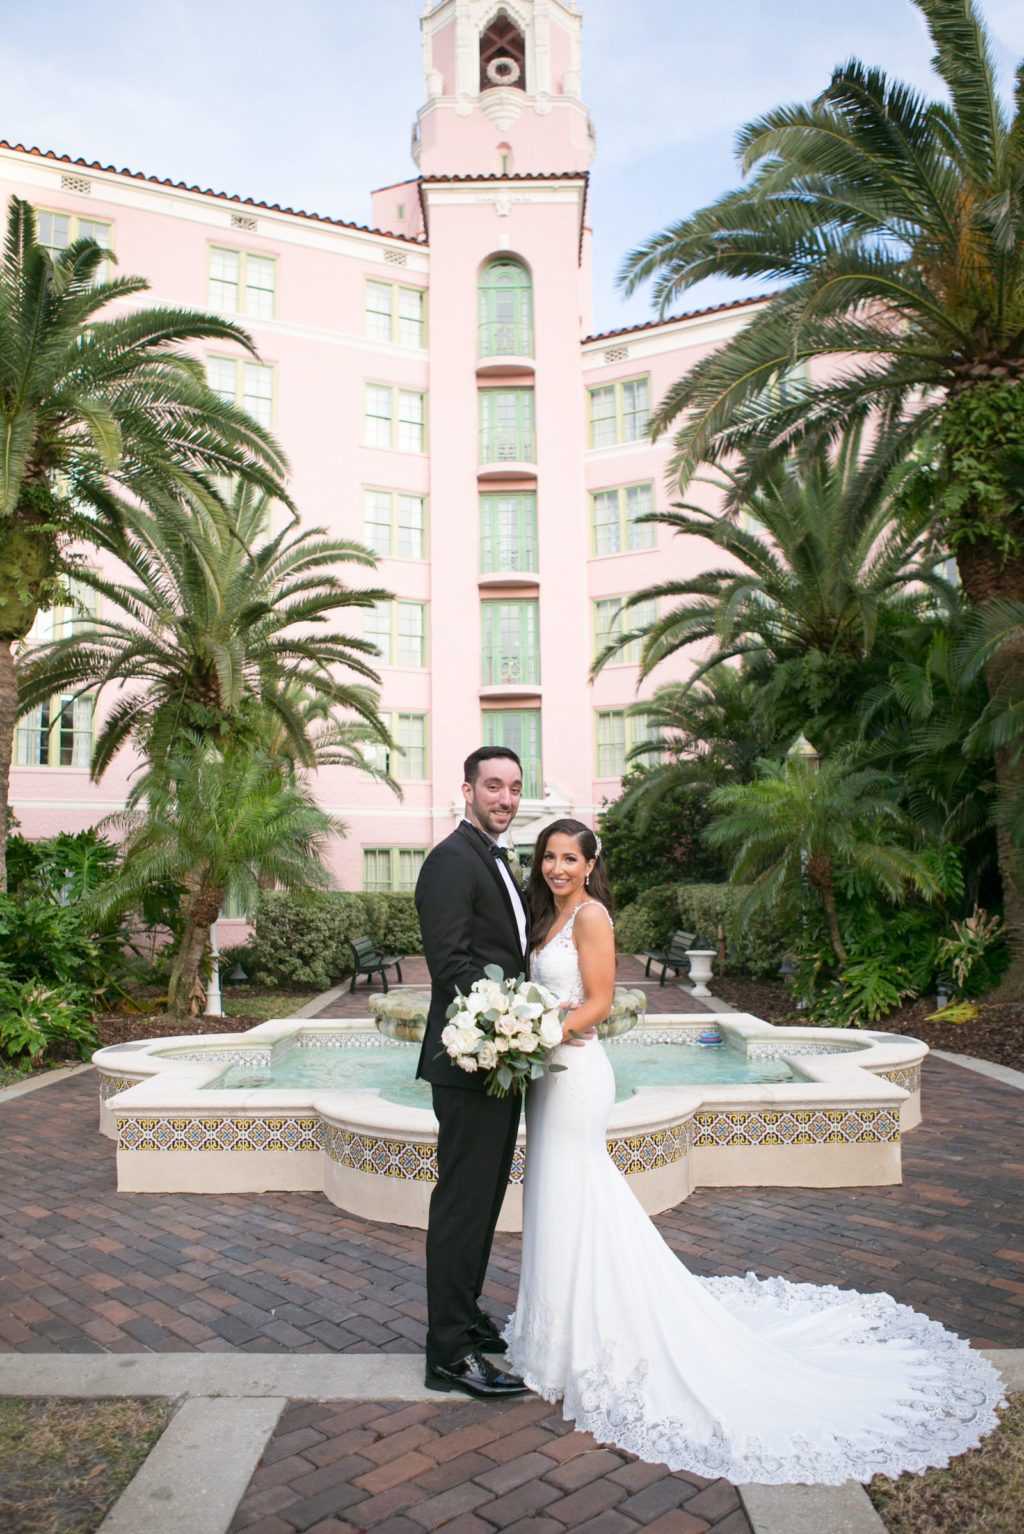 Elegant Classic Bride in Romantic Lace Train and Crepe Fitted Wedding Dress Holding White and Greenery Floral Bouquet, Groom in Classic Black Tux in Courtyard of St. Pete Wedding Venue The Vinoy Renaissance | Tampa Bay Wedding Photographer Carrie Wildes Photography | Wedding Dress Shop Isabel O'Neil Bridal Collection